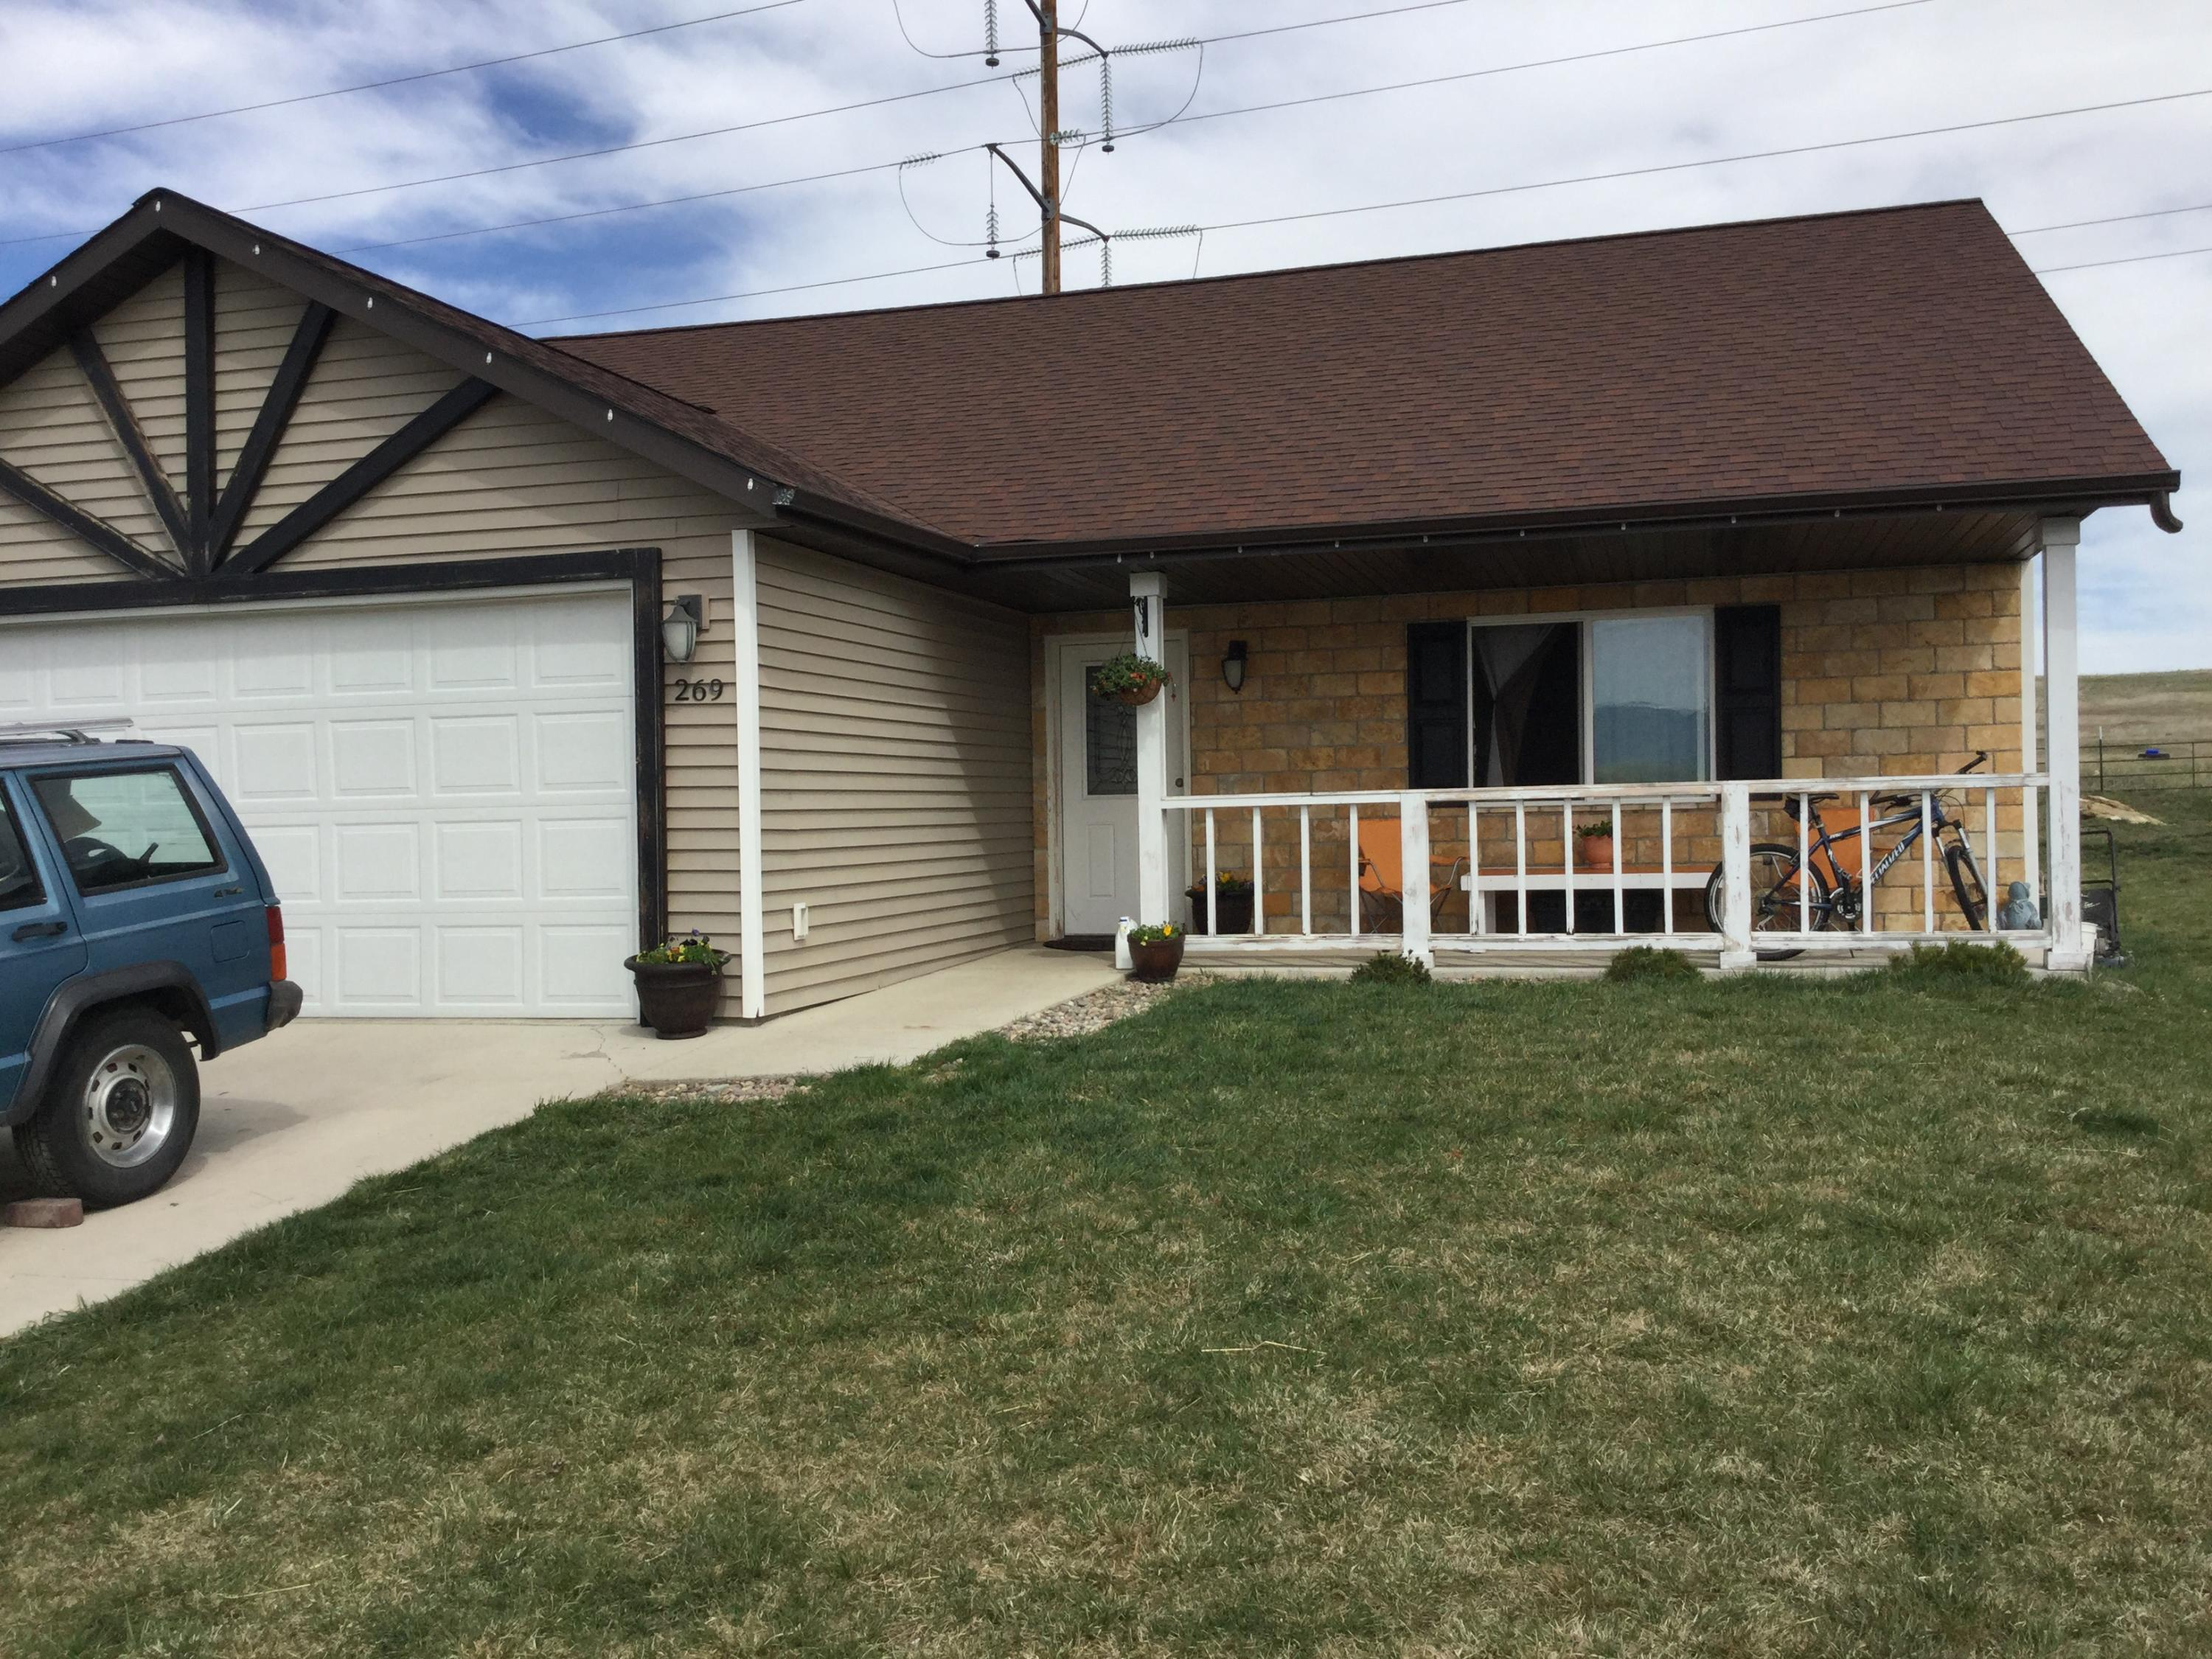 1269 Woodland Park Road, Sheridan, Wyoming 82801, 3 Bedrooms Bedrooms, ,2 BathroomsBathrooms,Residential,For Sale,Woodland Park,18-1215